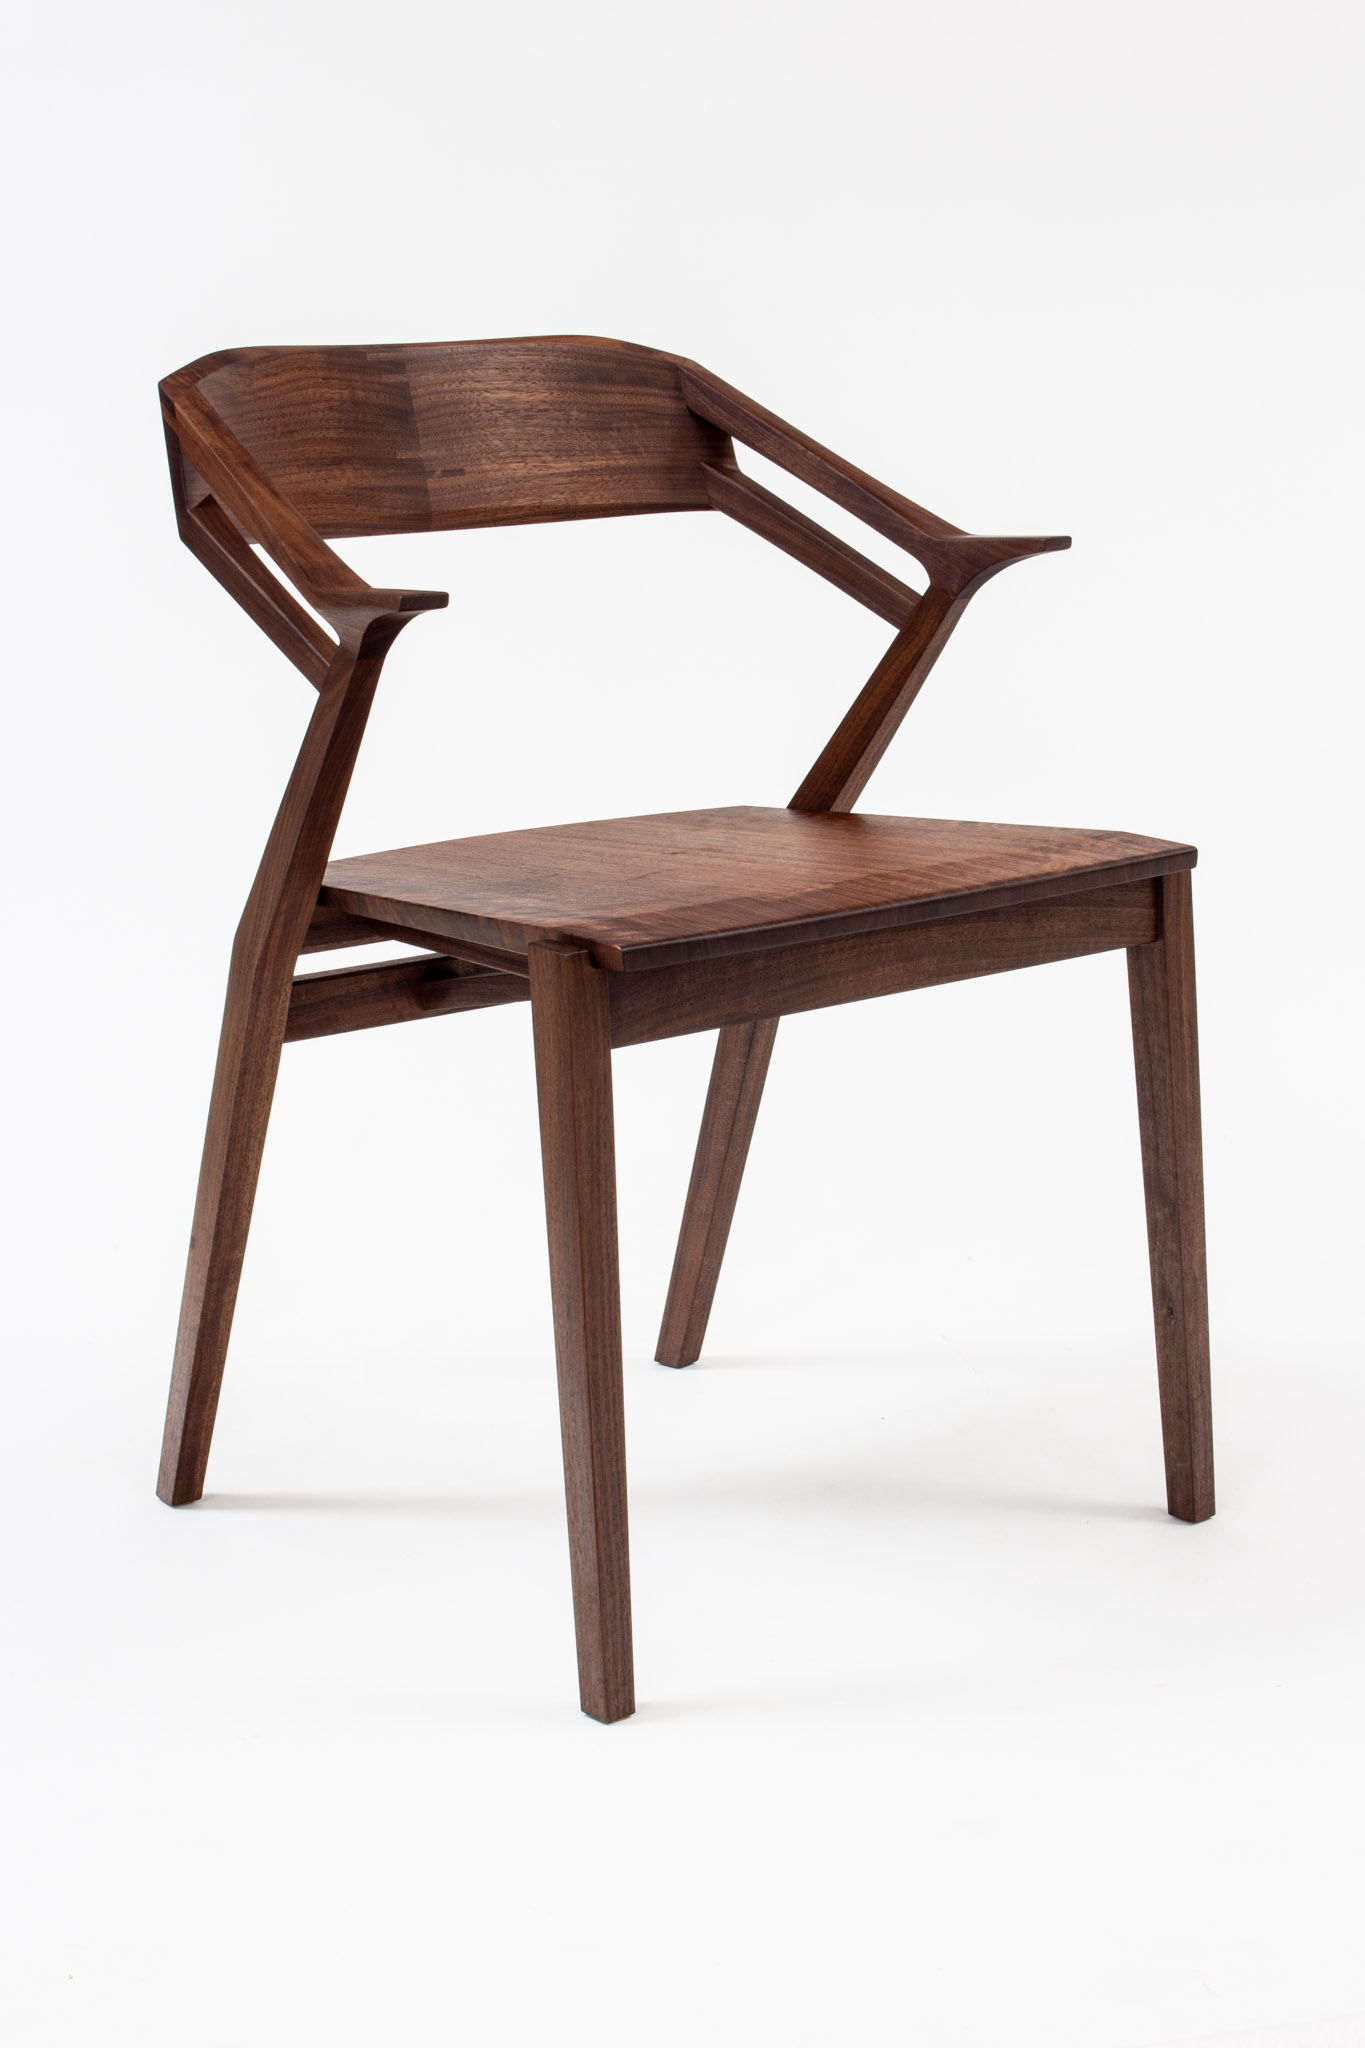 Watlington walnut chair